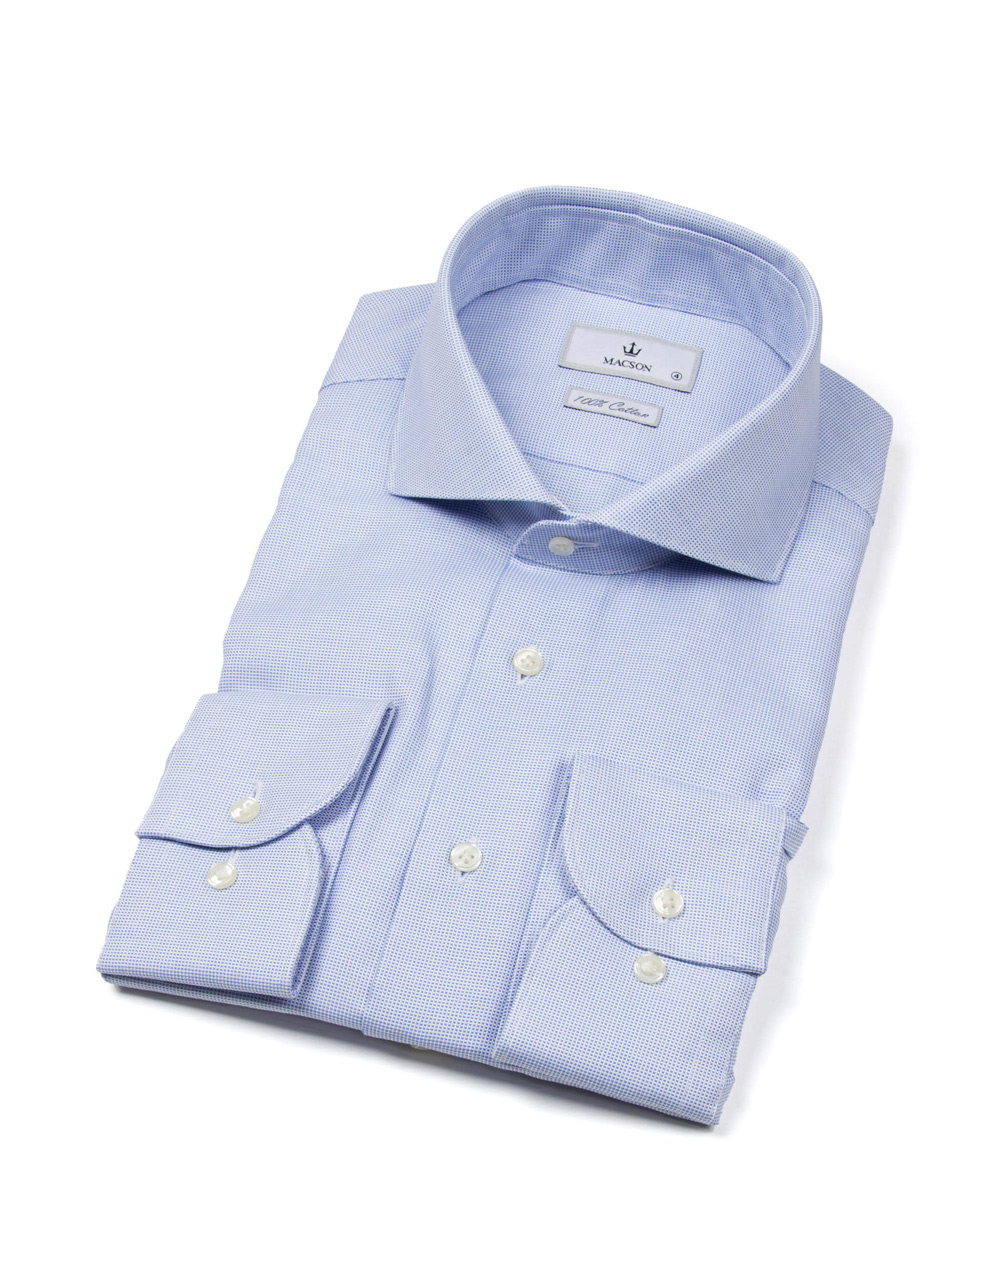 Blue Oxford shirt with white collar